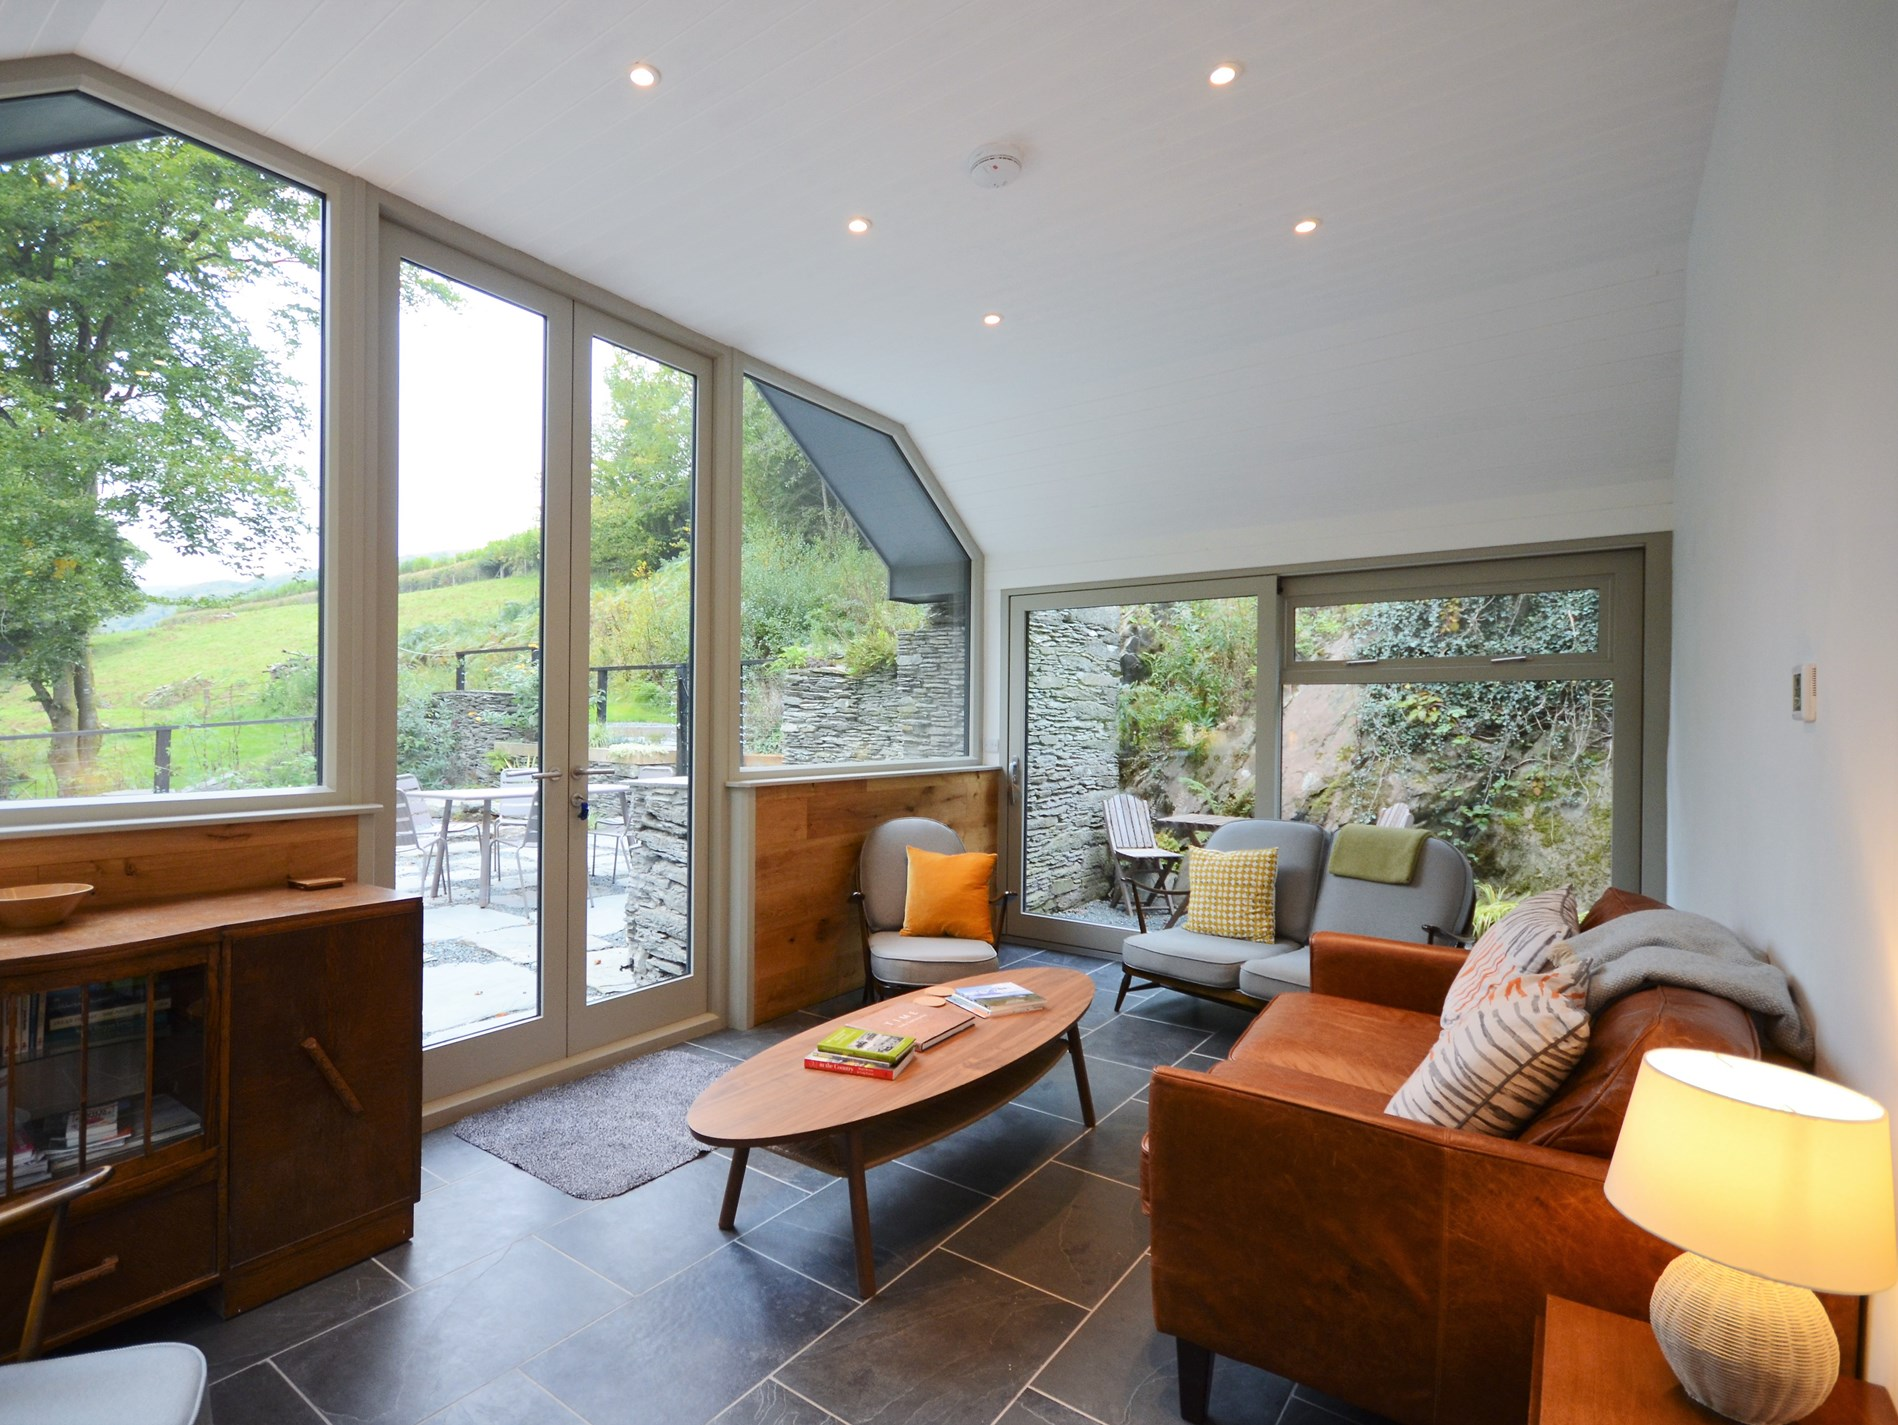 Beautiful sun room leading out onto the patio